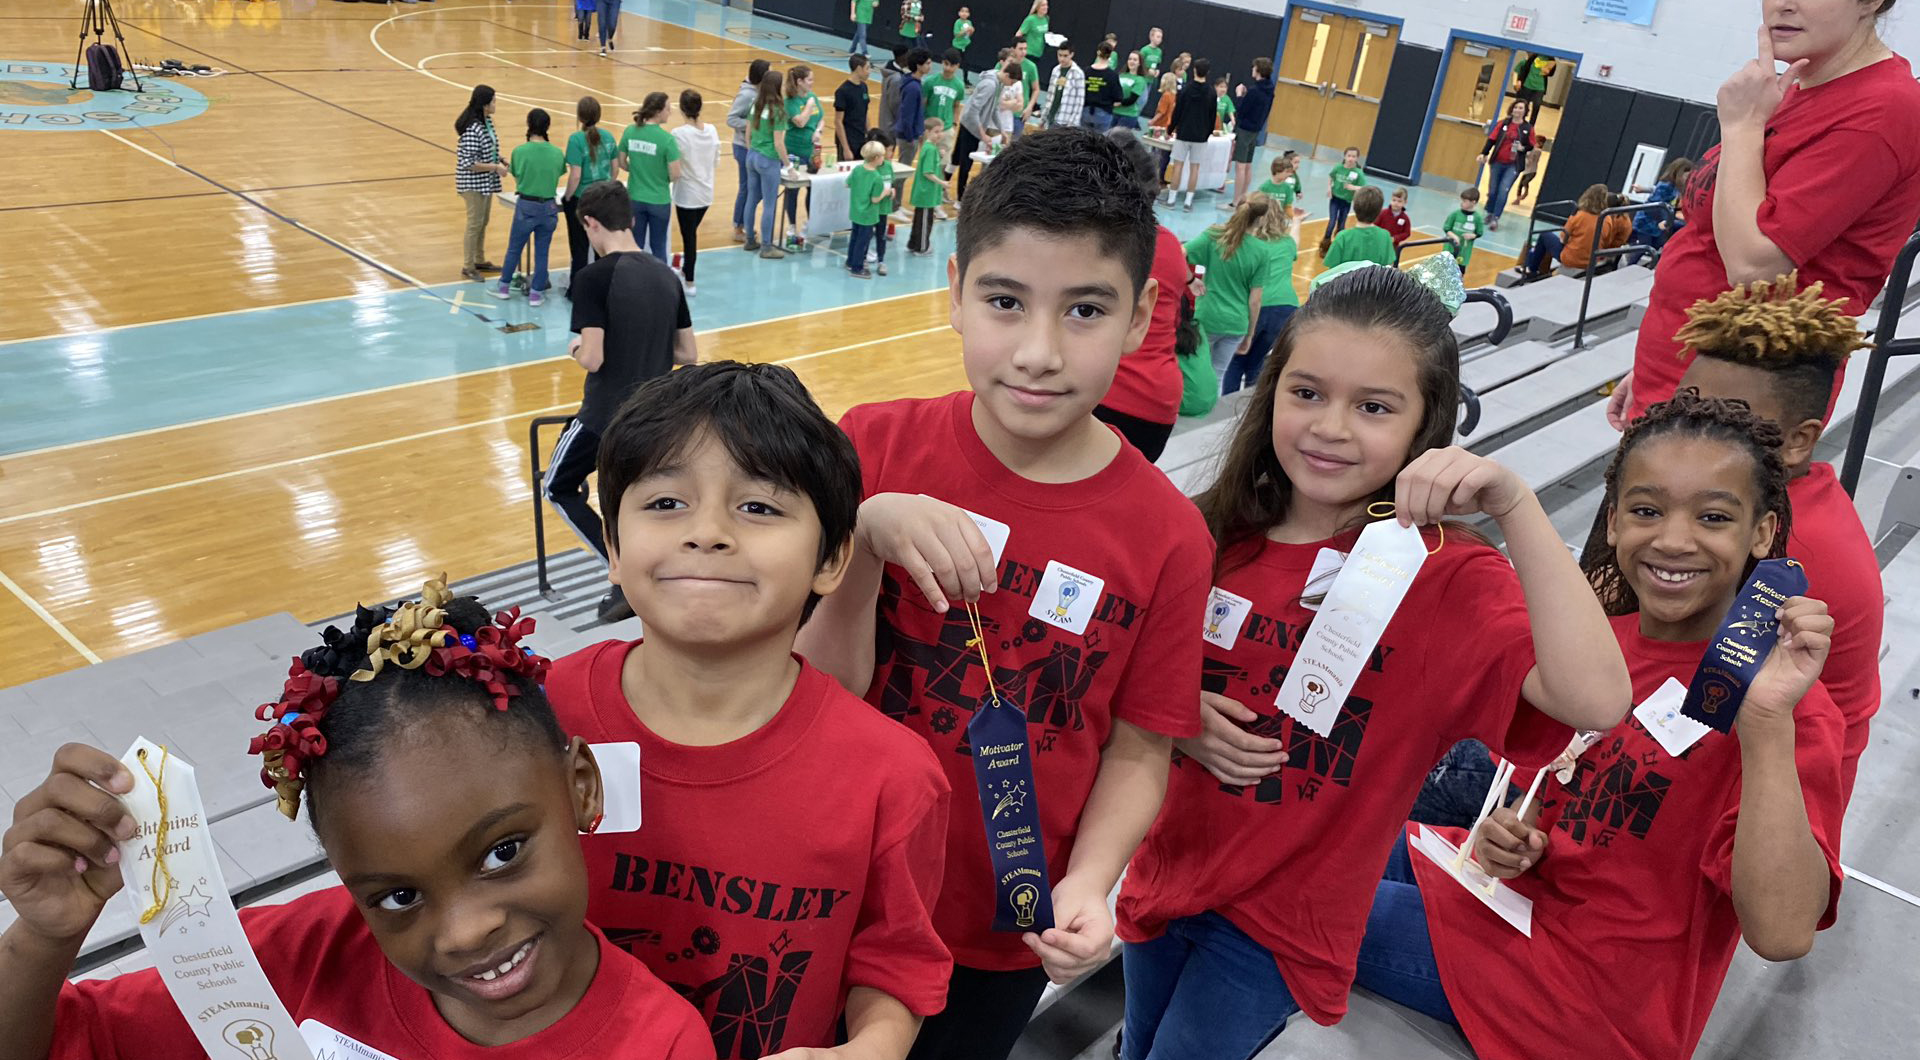 Group of students in matching red t-shirts hold up their awards at the STEAM competition.